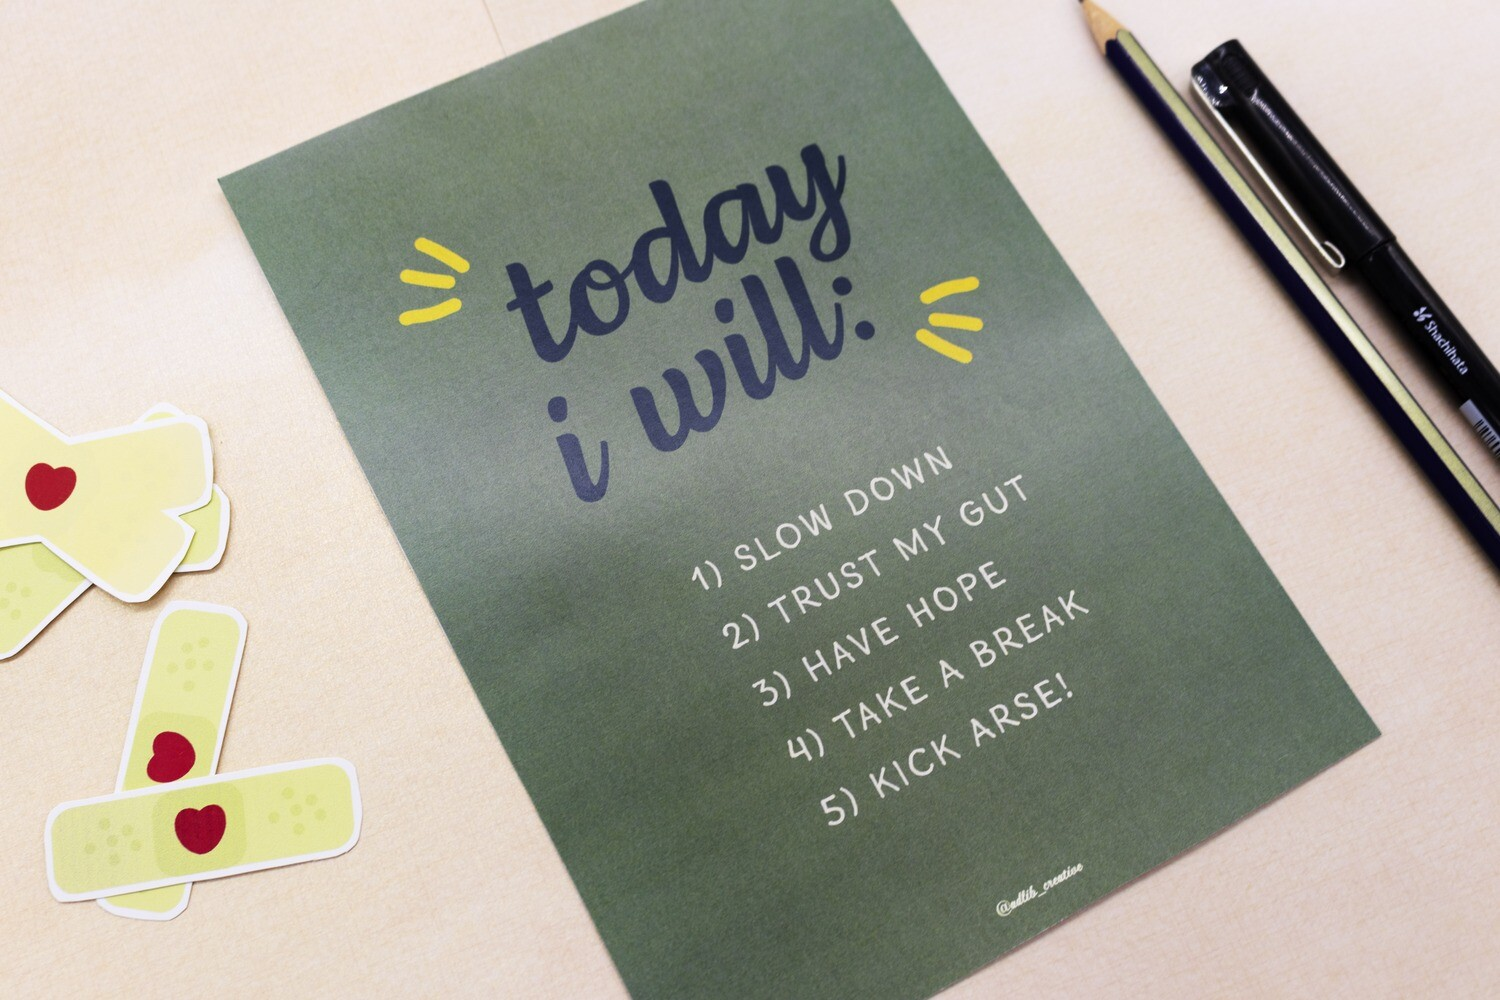 Today I will - print